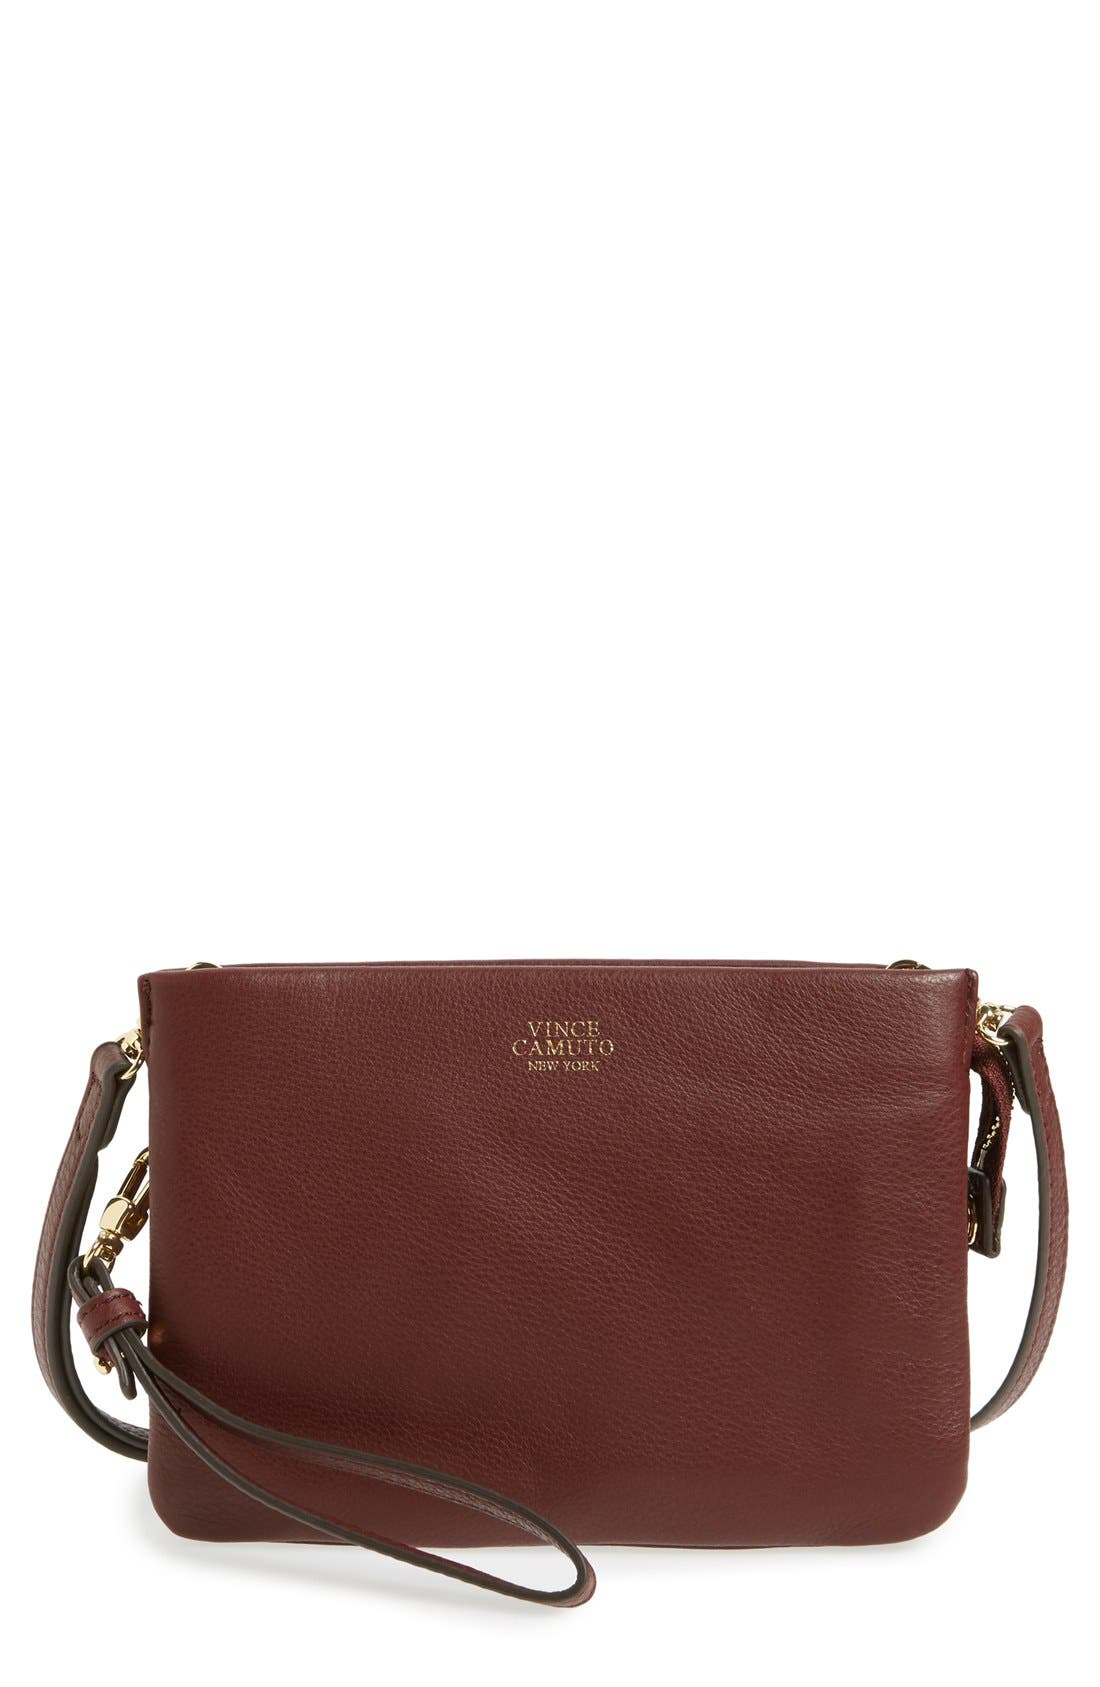 'Cami' Leather Crossbody Bag,                             Main thumbnail 34, color,